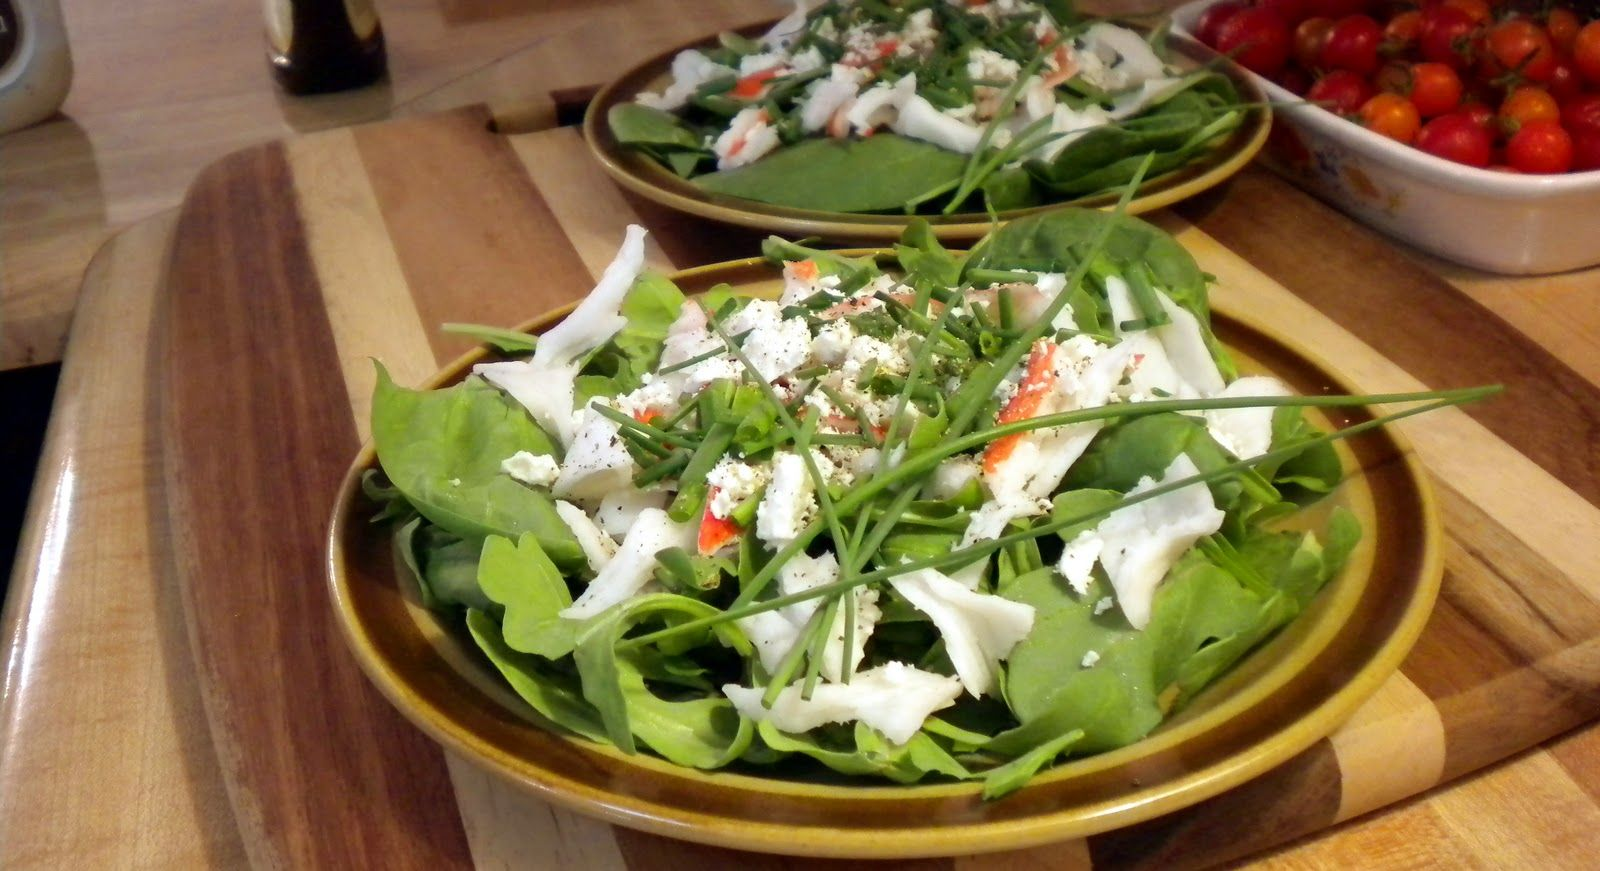 Crab Salad In Little White Dipping Bowls